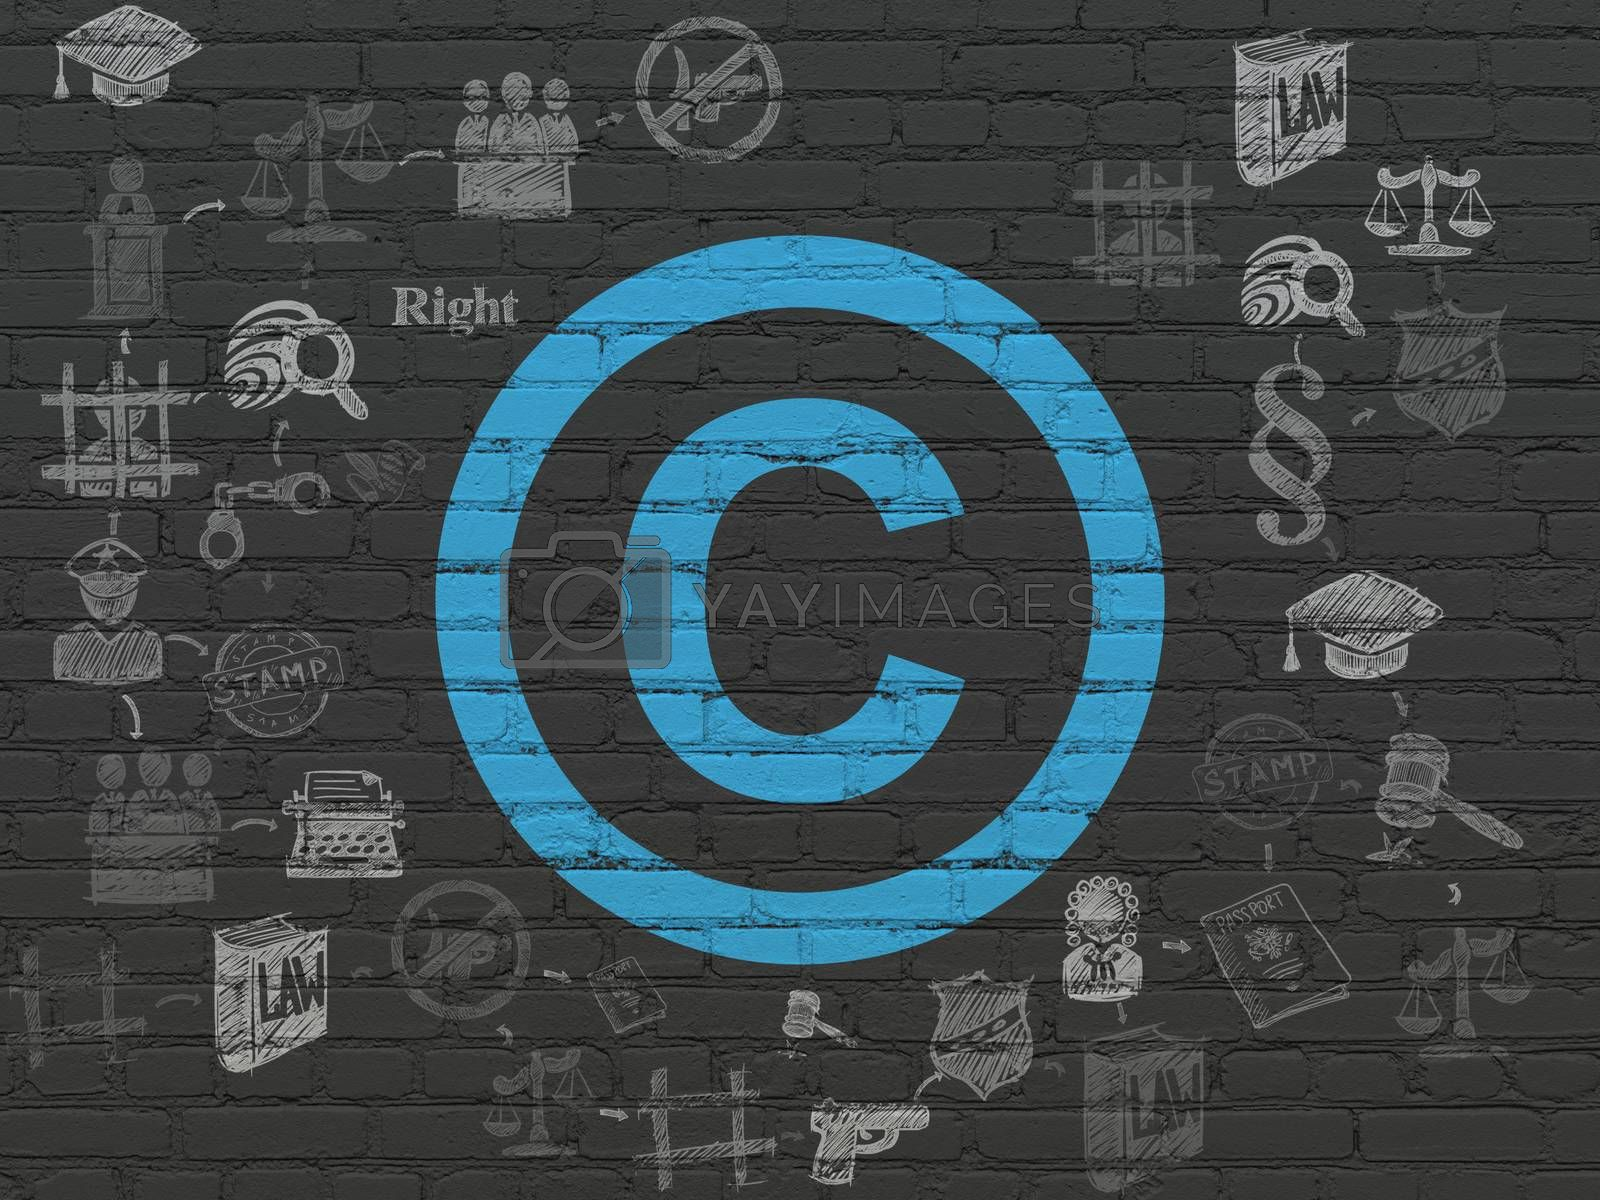 Law concept: Painted blue Copyright icon on Black Brick wall background with Scheme Of Hand Drawn Law Icons